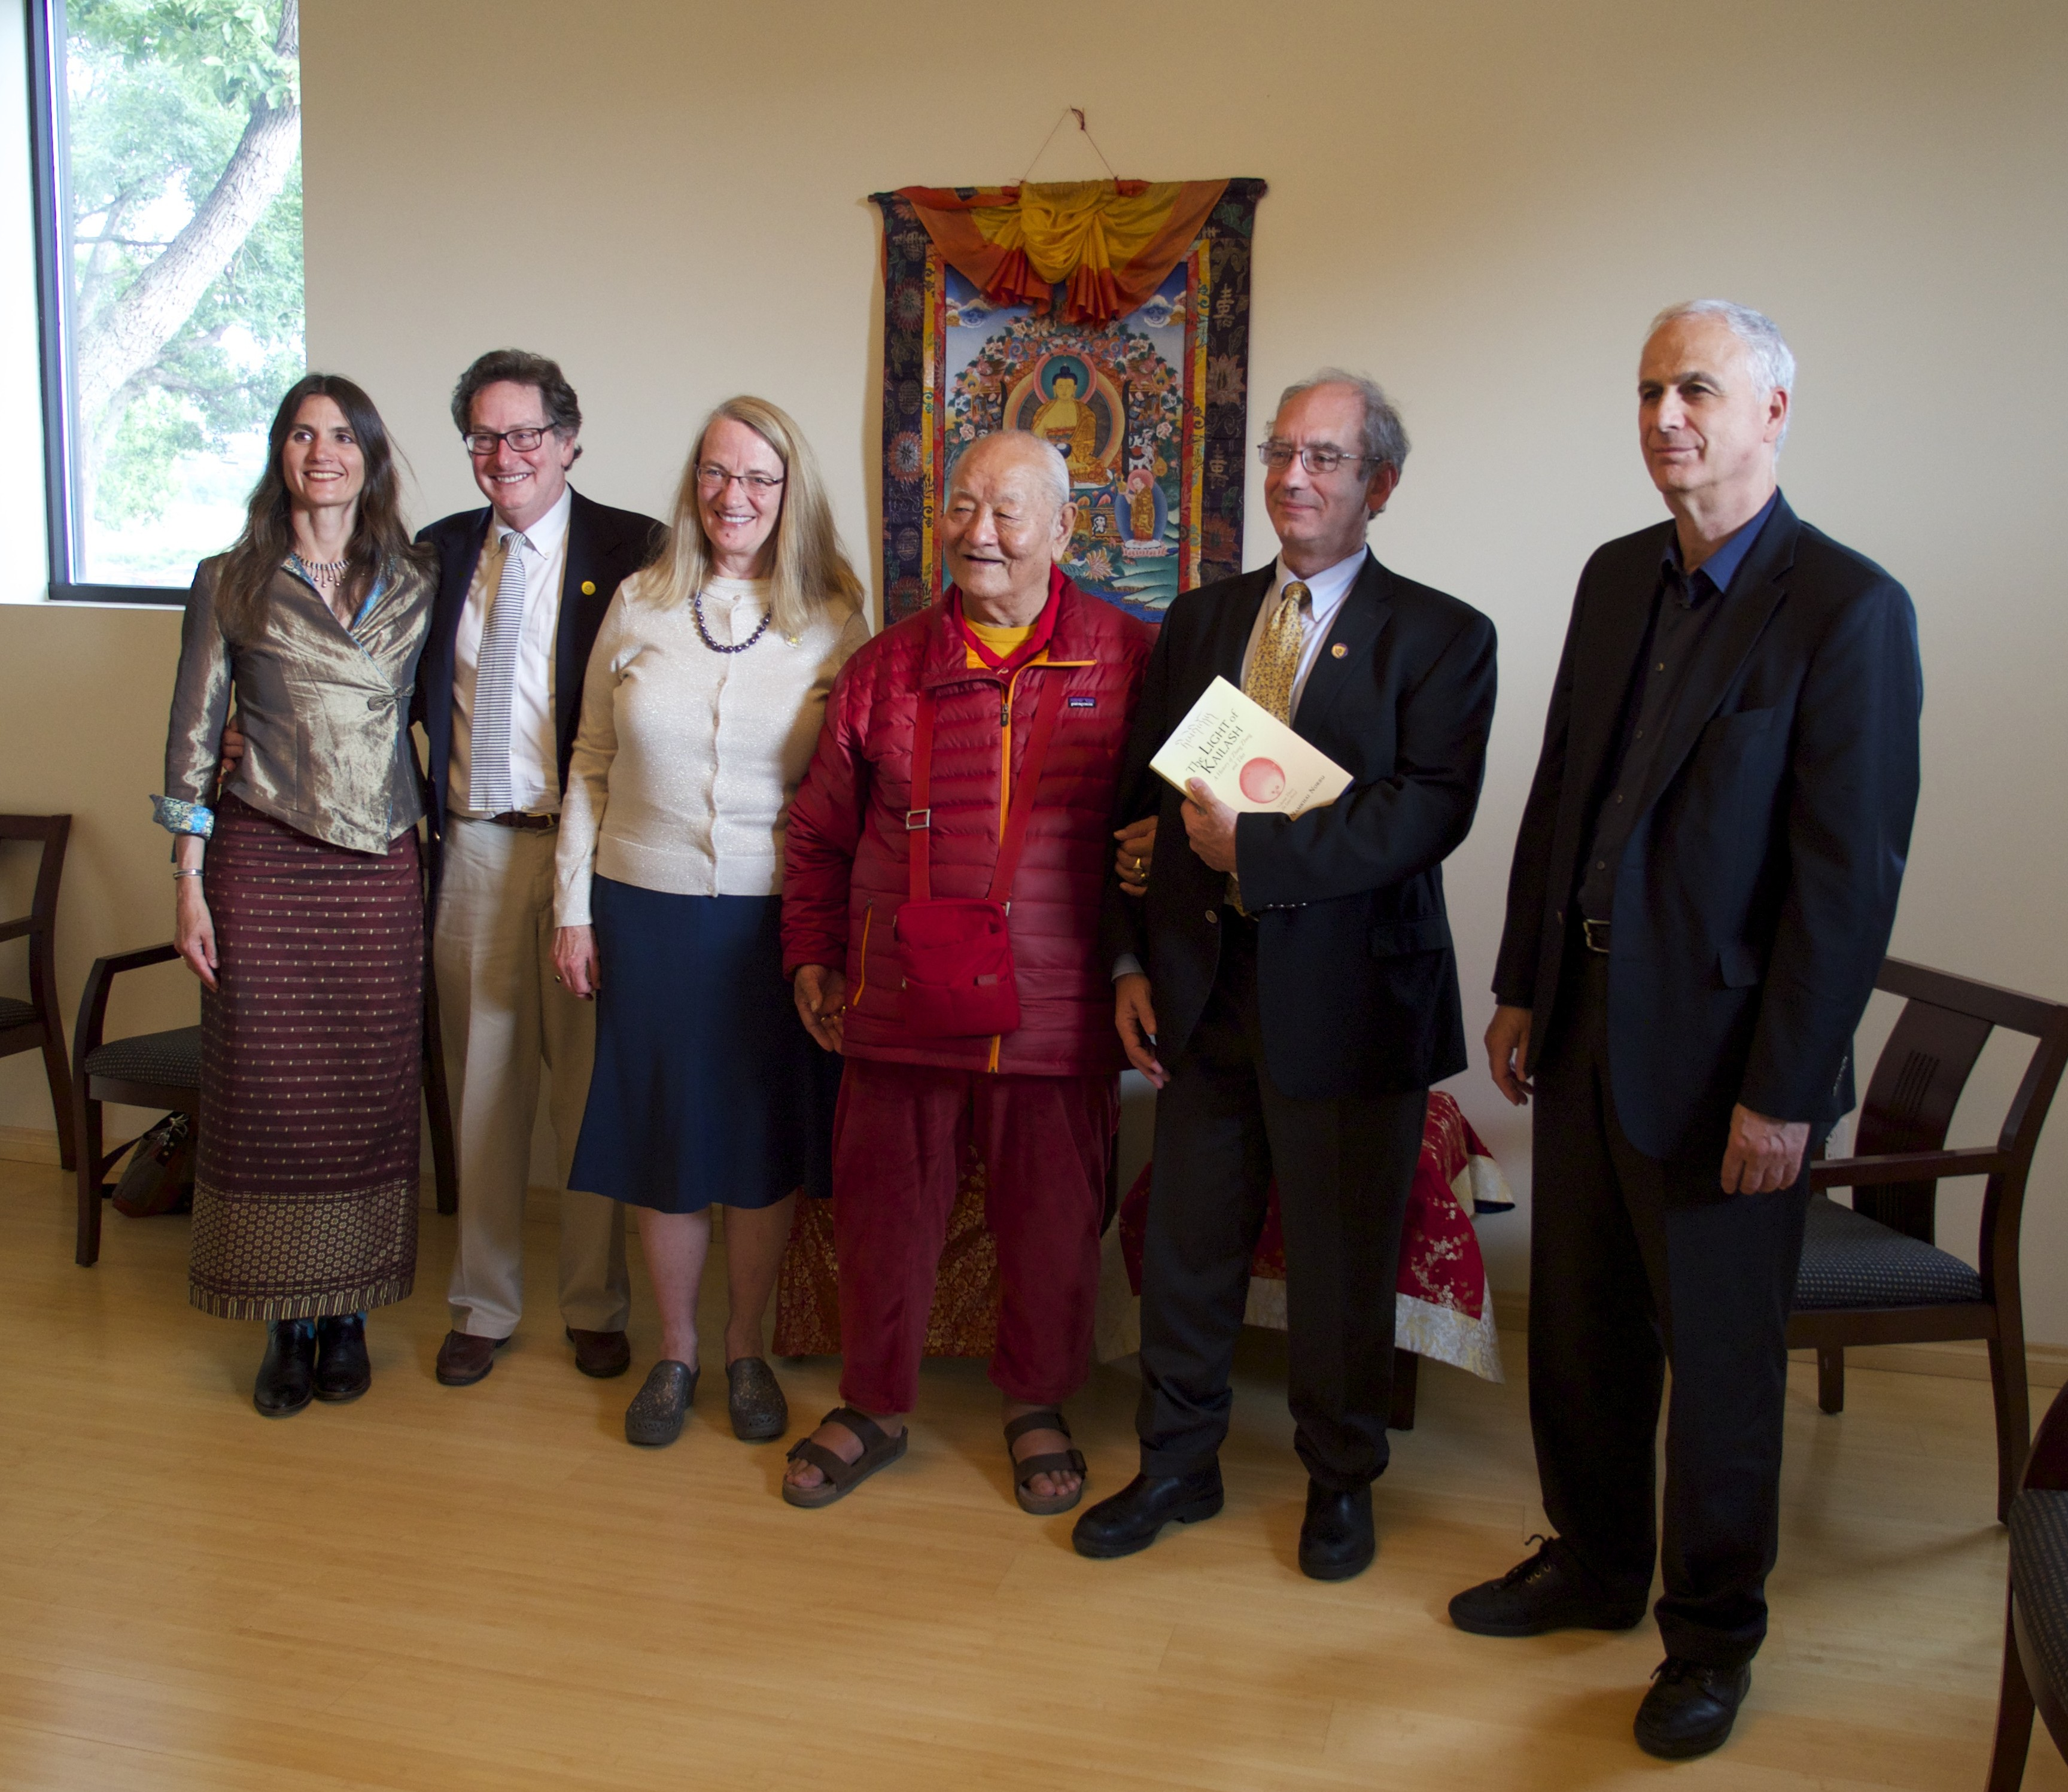 Rinpoche with Naropa officials at a pre public talk tea, from left to right:  Charlotte Rotterdam, John Weber, Judith Simmer-Brown, Chuck Lief, President of Naropa University and Tom Hast.